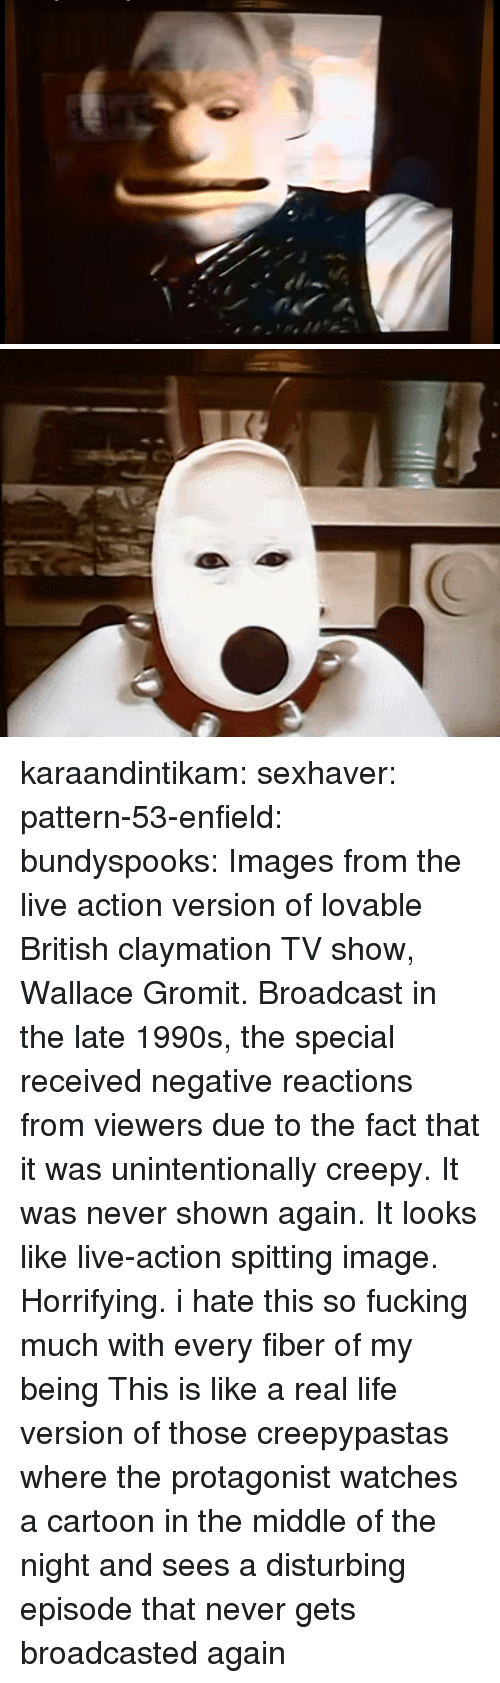 Creepy, Fucking, and Life: karaandintikam:  sexhaver:  pattern-53-enfield:  bundyspooks: Images from the live action version of lovable British claymation TV show, Wallace  Gromit. Broadcast in the late 1990s, the special received negative reactions from viewers due to the fact that it was unintentionally creepy. It was never shown again.  It looks like live-action spitting image. Horrifying.   i hate this so fucking much with every fiber of my being  This is like a real life version of those creepypastas where the protagonist watches a cartoon in the middle of the night and sees a disturbing episode that never gets broadcasted again